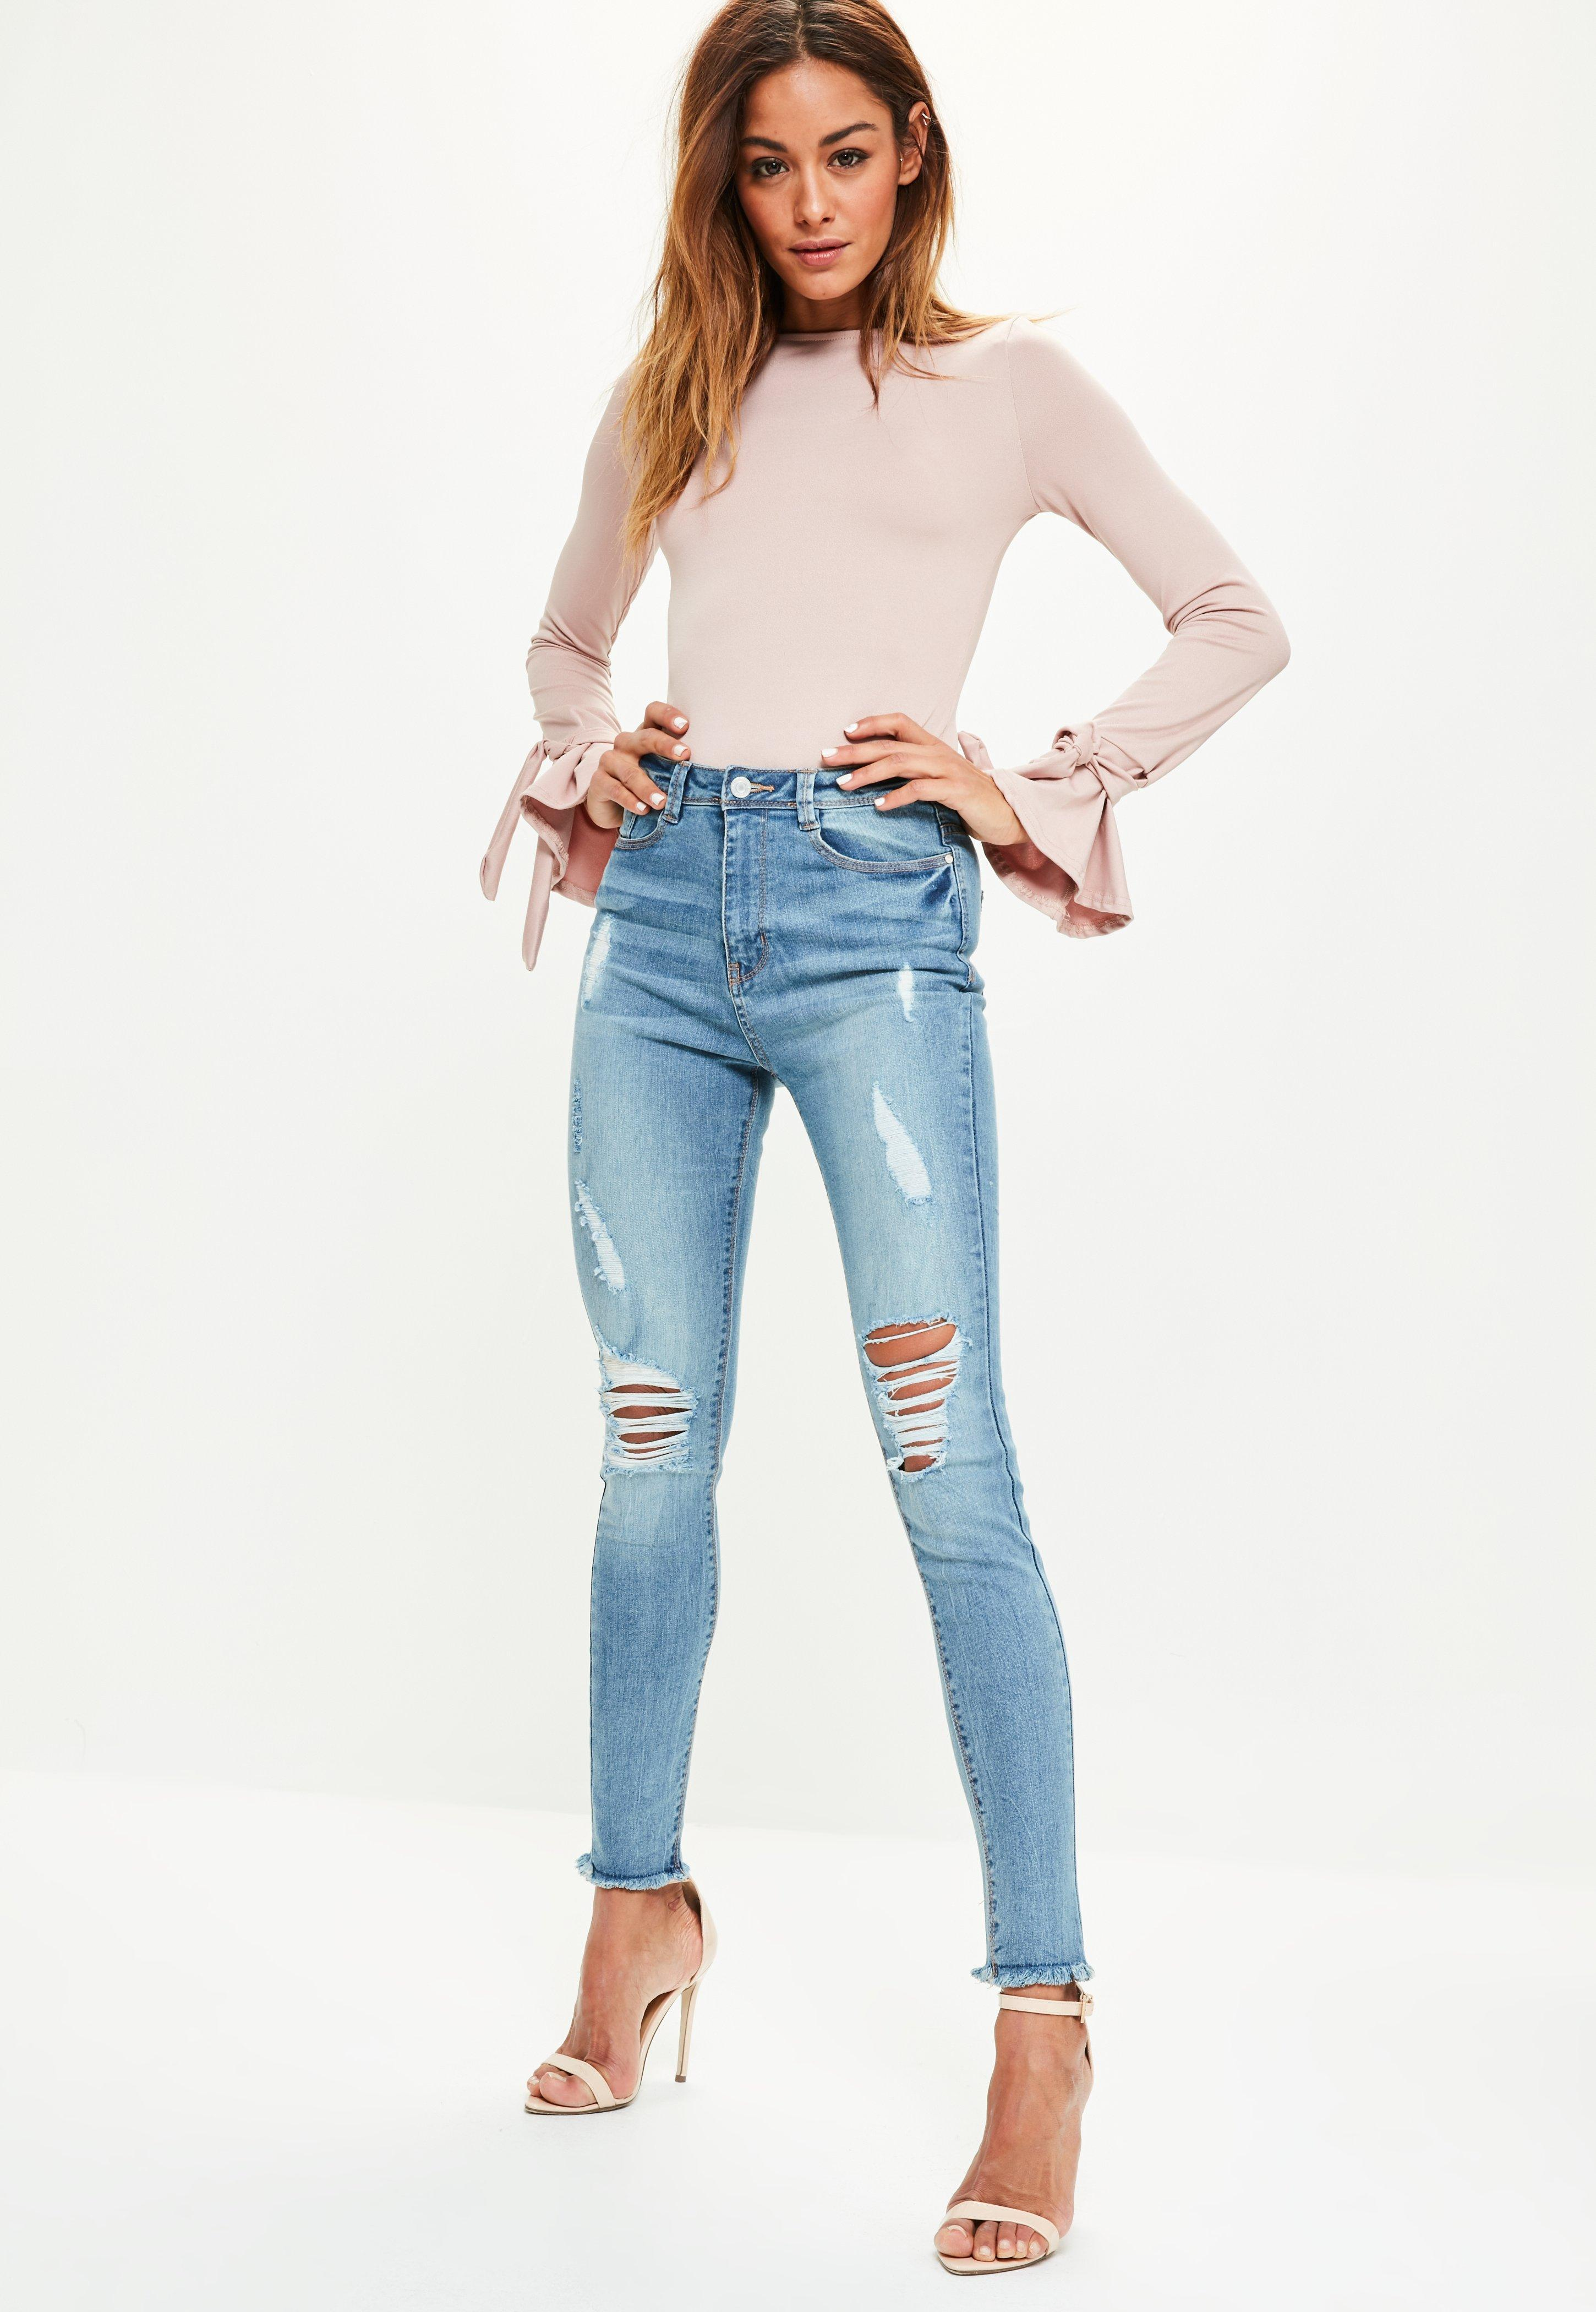 Lyst - Missguided Blue Sinner High Waisted Fray Ripped Skinny Jeans ... 03176c918cd1